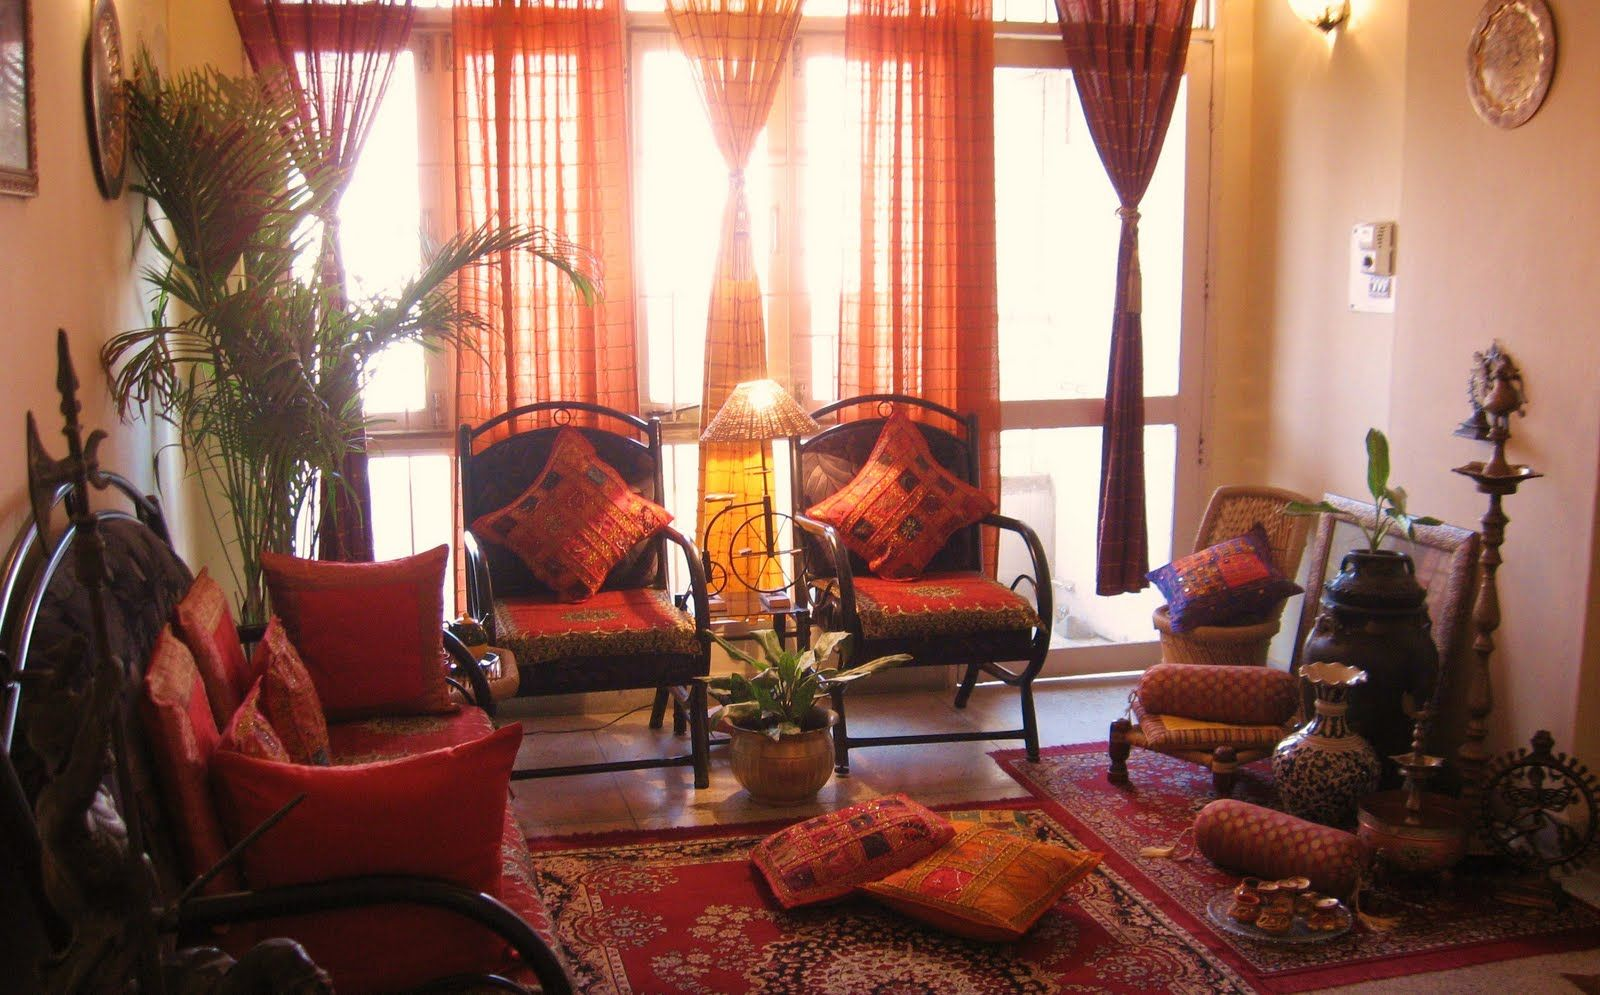 East Indian interiors Check out some Home decor Ideas